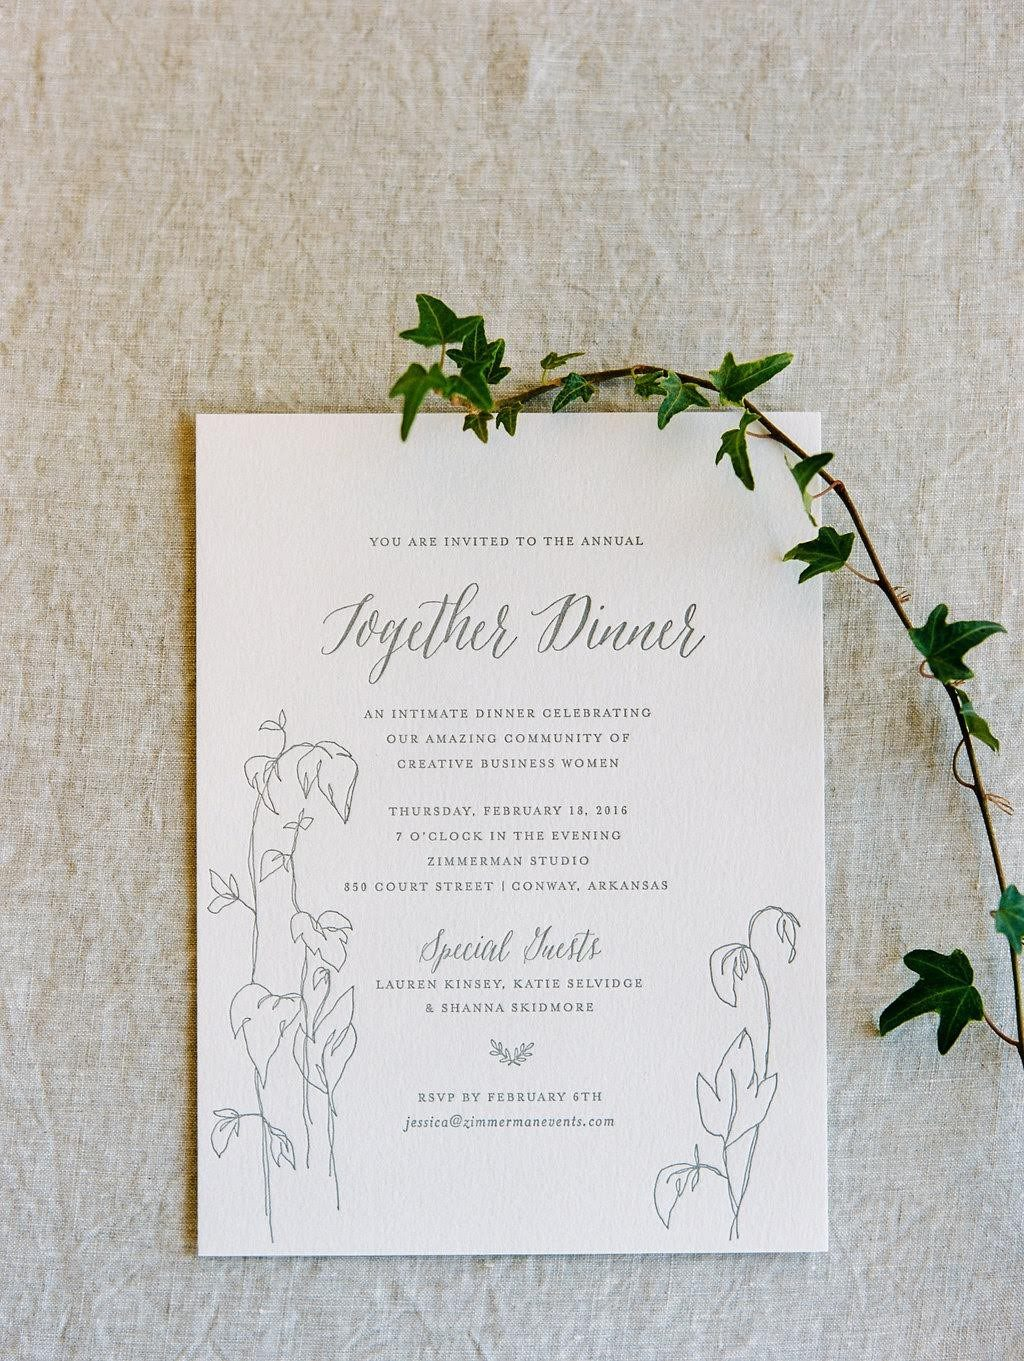 Letterpress menus from Bella Figura